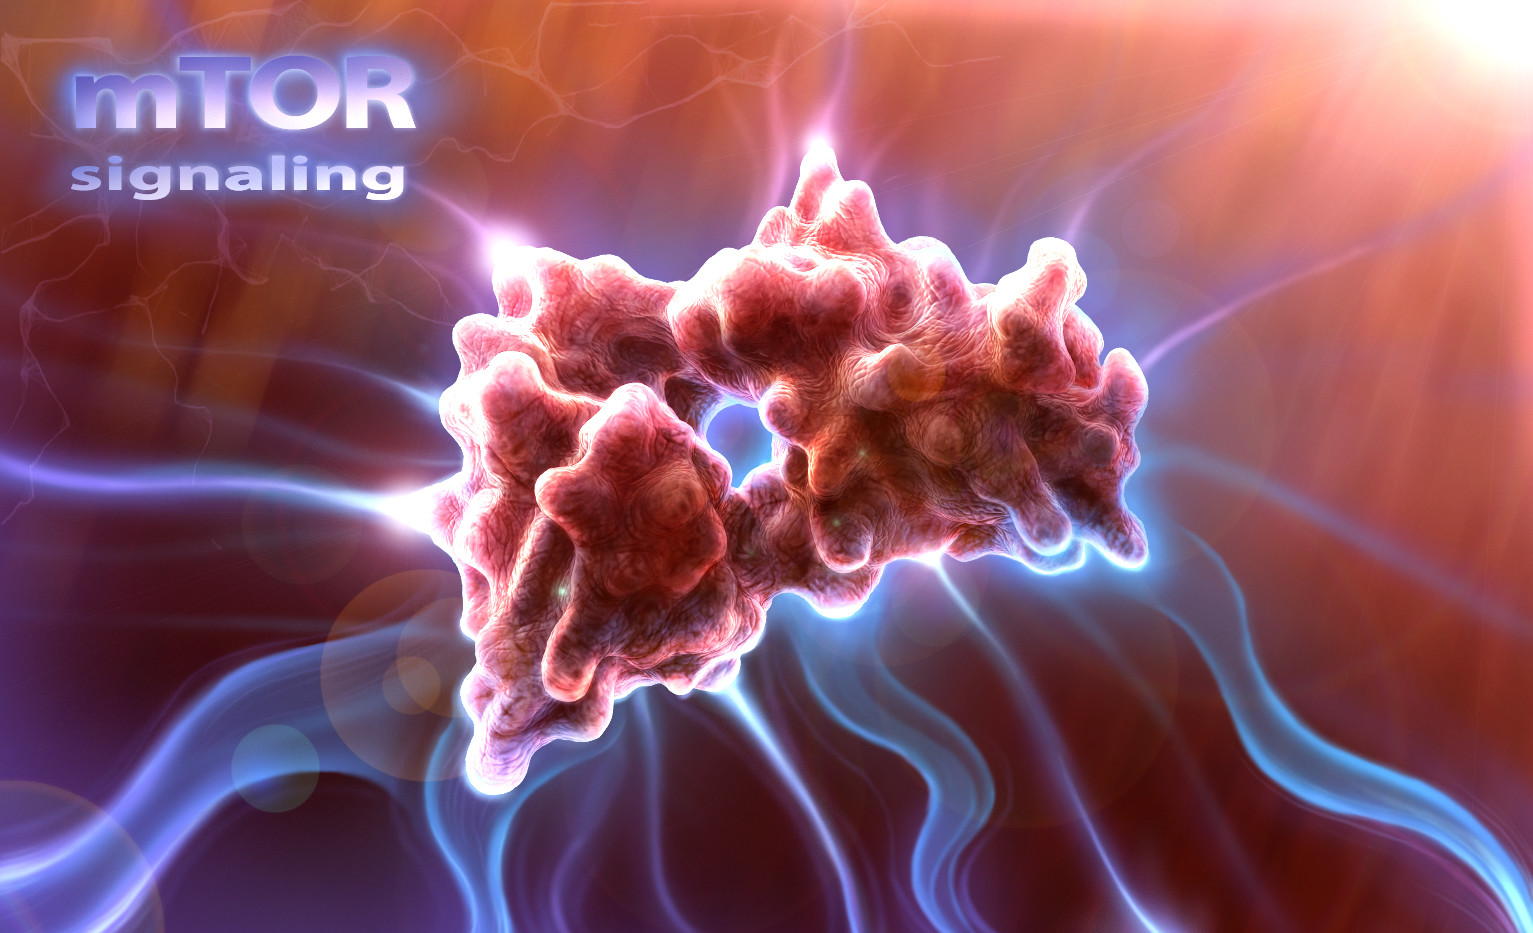 mTor signaling visual effect concept